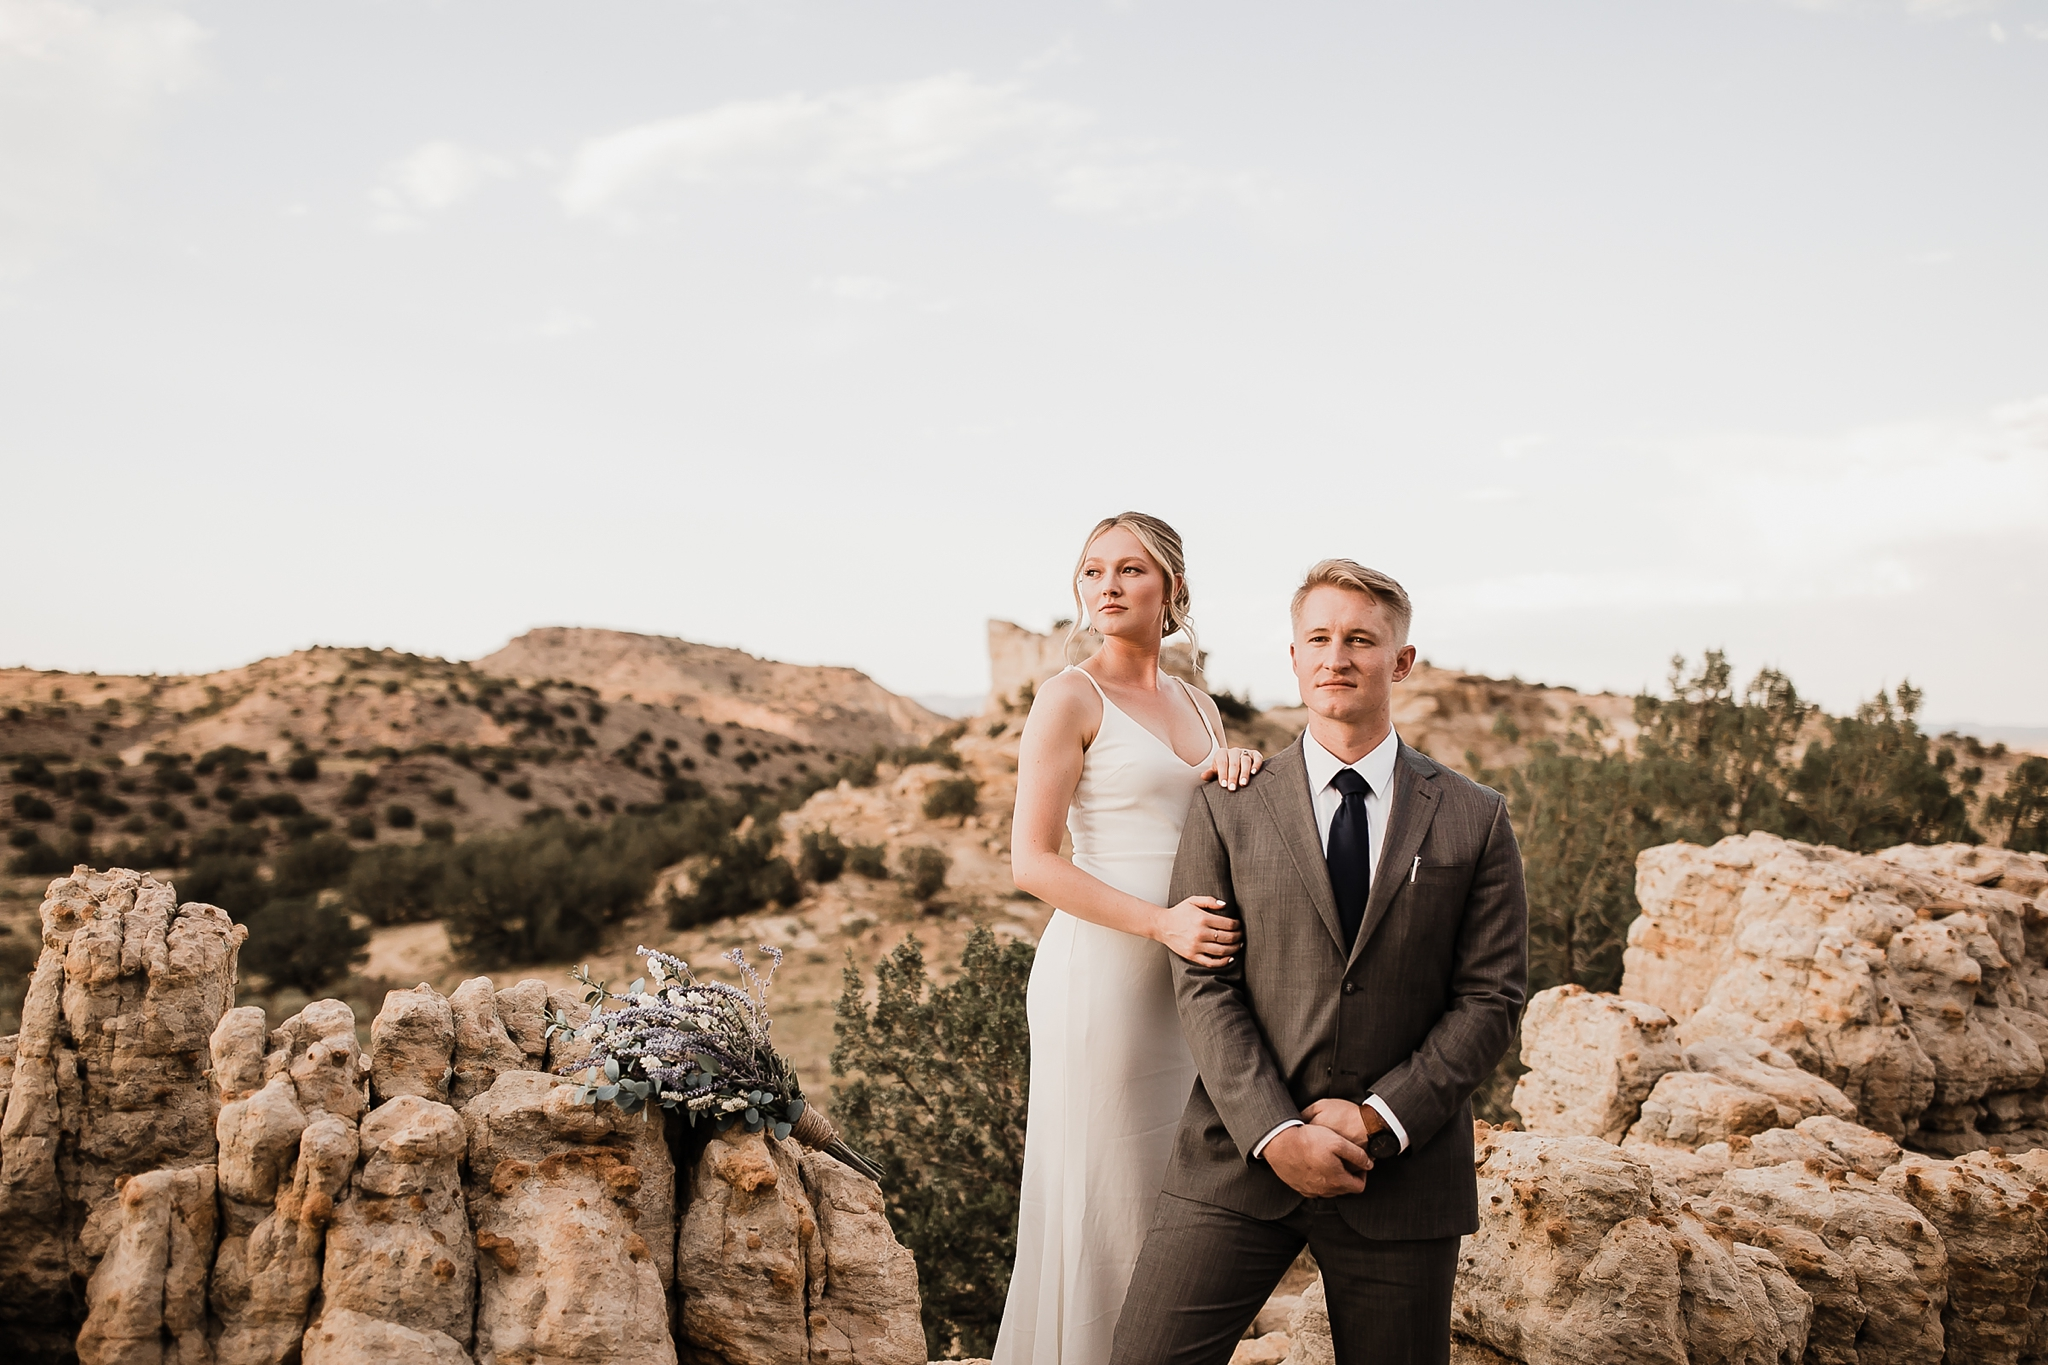 Alicia+lucia+photography+-+albuquerque+wedding+photographer+-+santa+fe+wedding+photography+-+new+mexico+wedding+photographer+-+new+mexico+wedding+-+new+mexico+elopement+-+elopment+-+mountain+elopement_0010.jpg